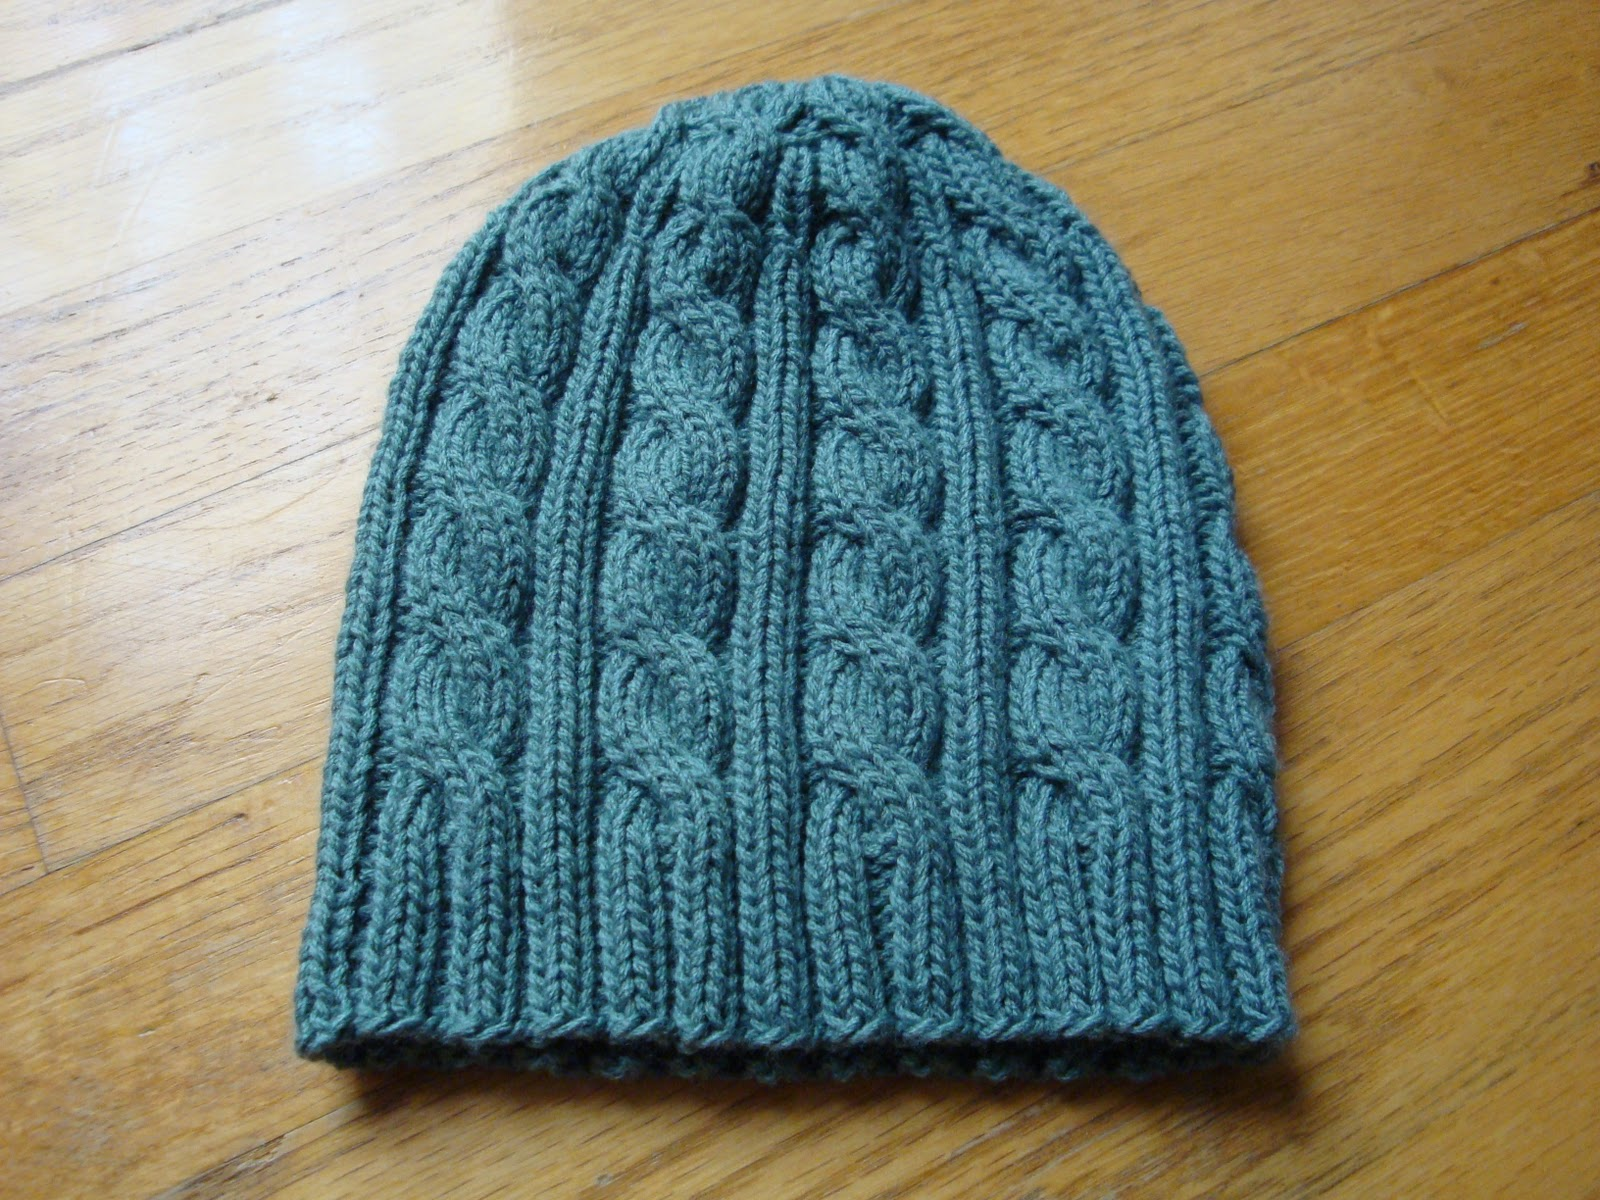 Free Knitting Patterns For Hats In The Round : Kims Knitting Korner: November 2010